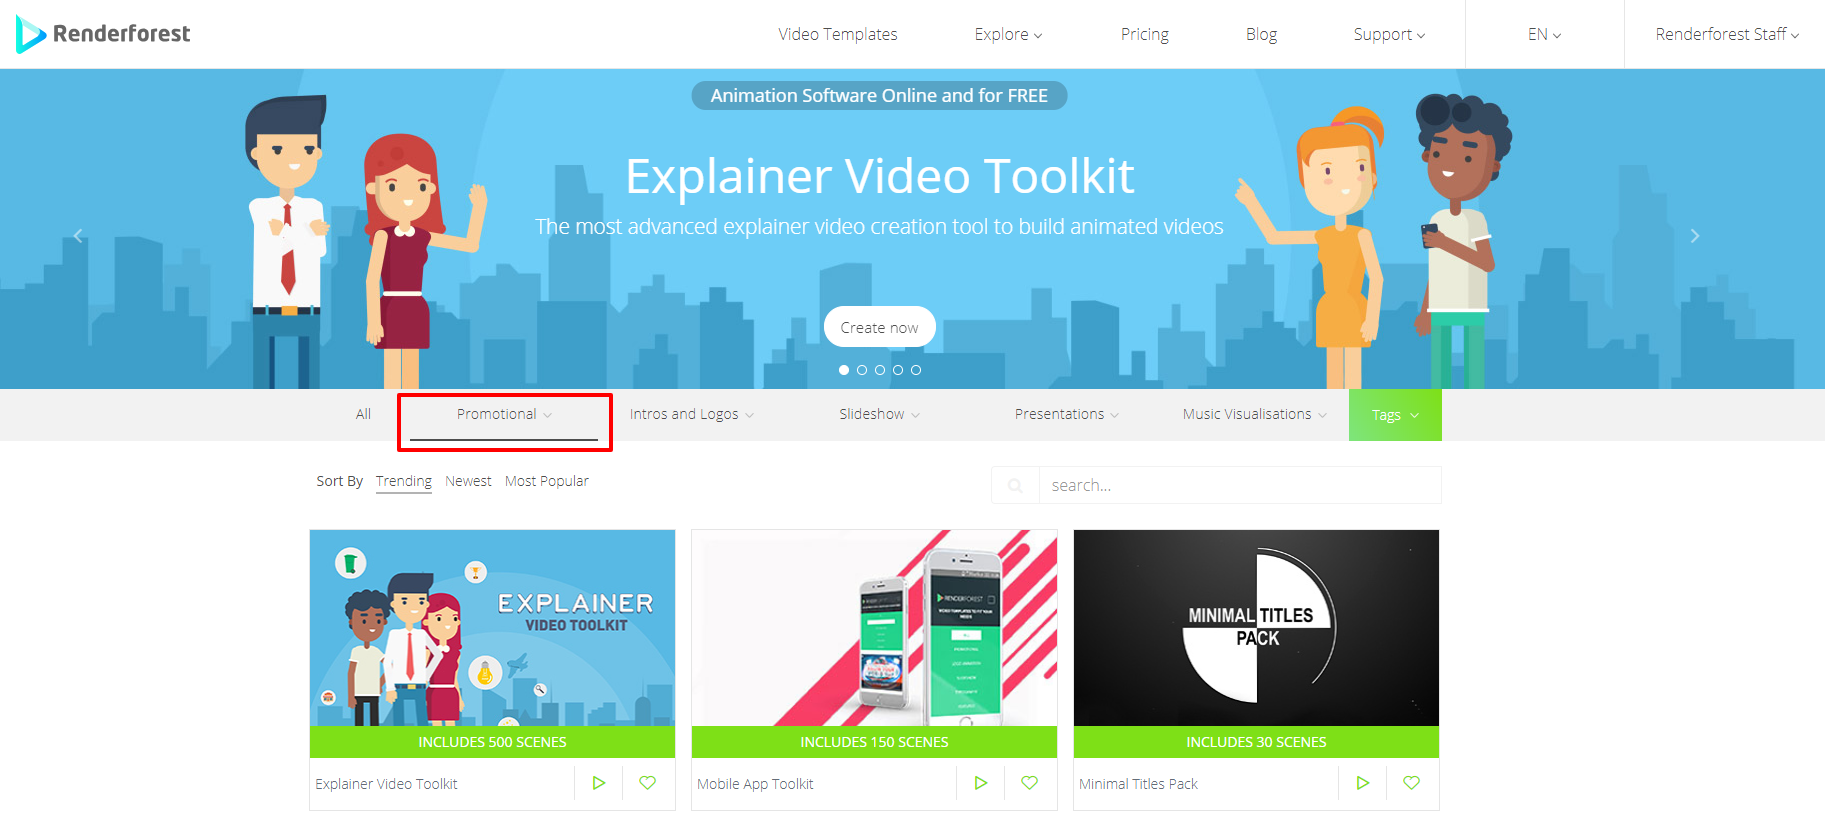 Promotional Video Templates